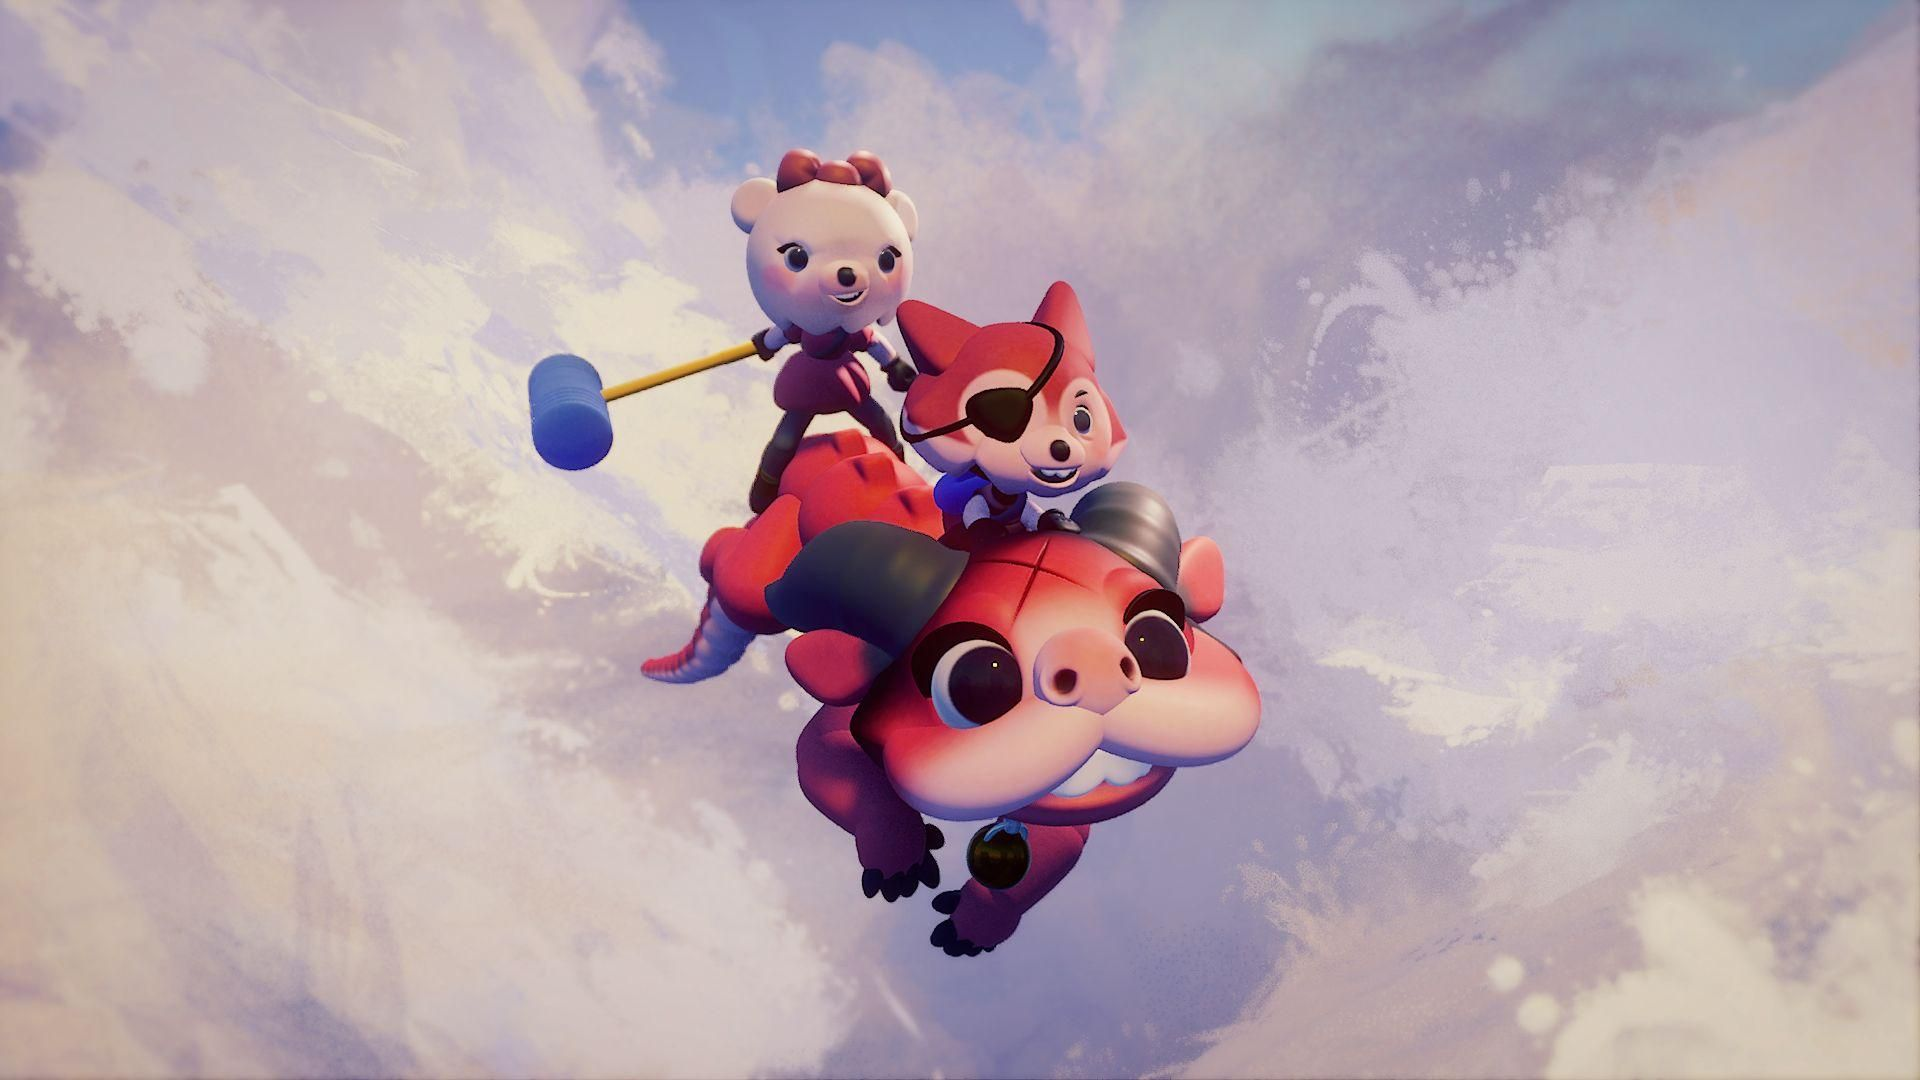 Dreams Game Wallpapers Ps4 Exclusives Video Games Playstatio